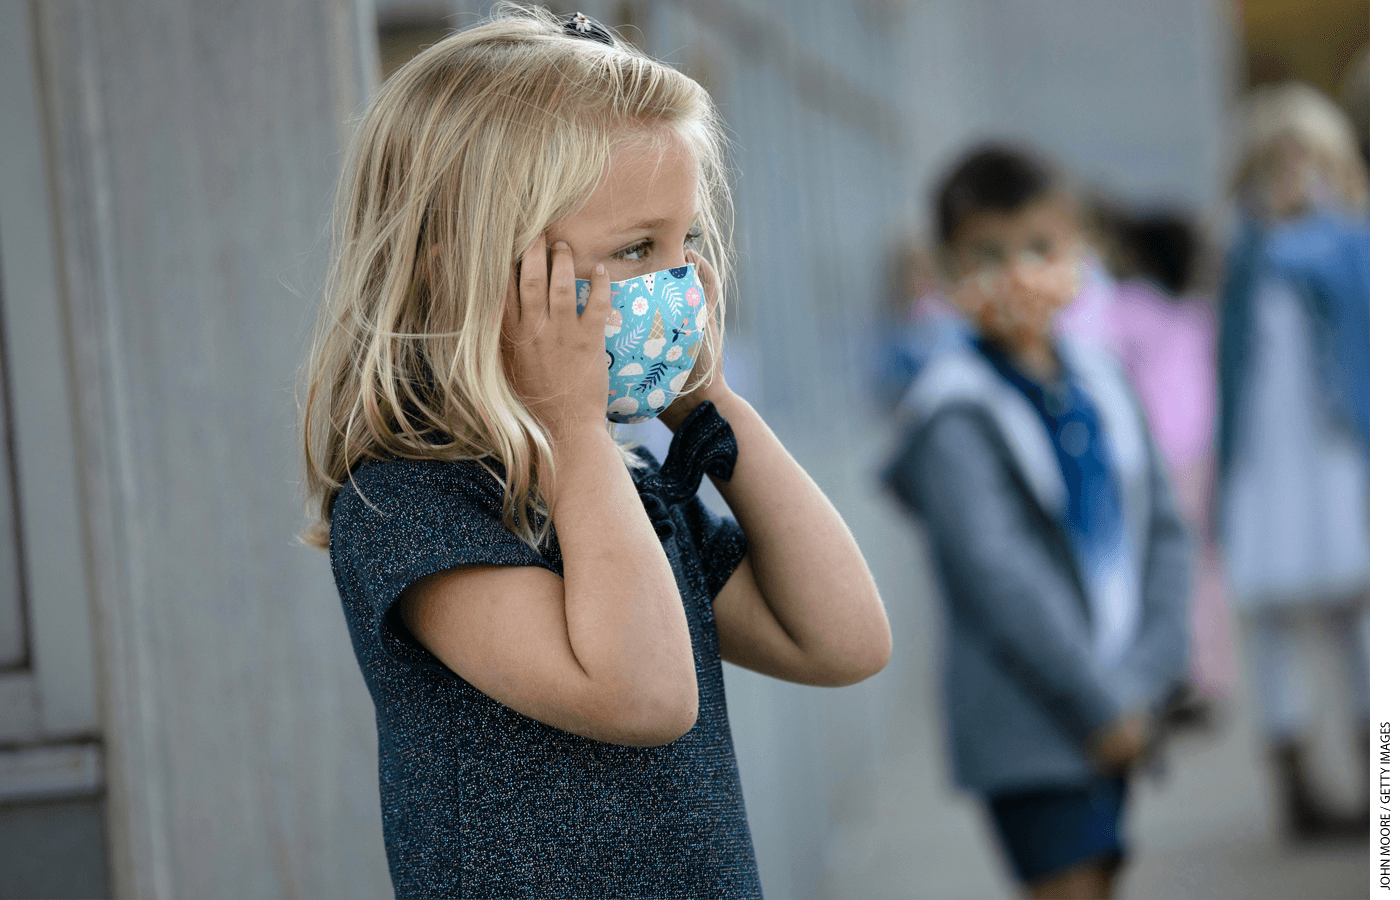 About half of parents favor requiring students to wear masks when schools open in the fall, and about a third oppose the practice, with the rest taking a neutral position.